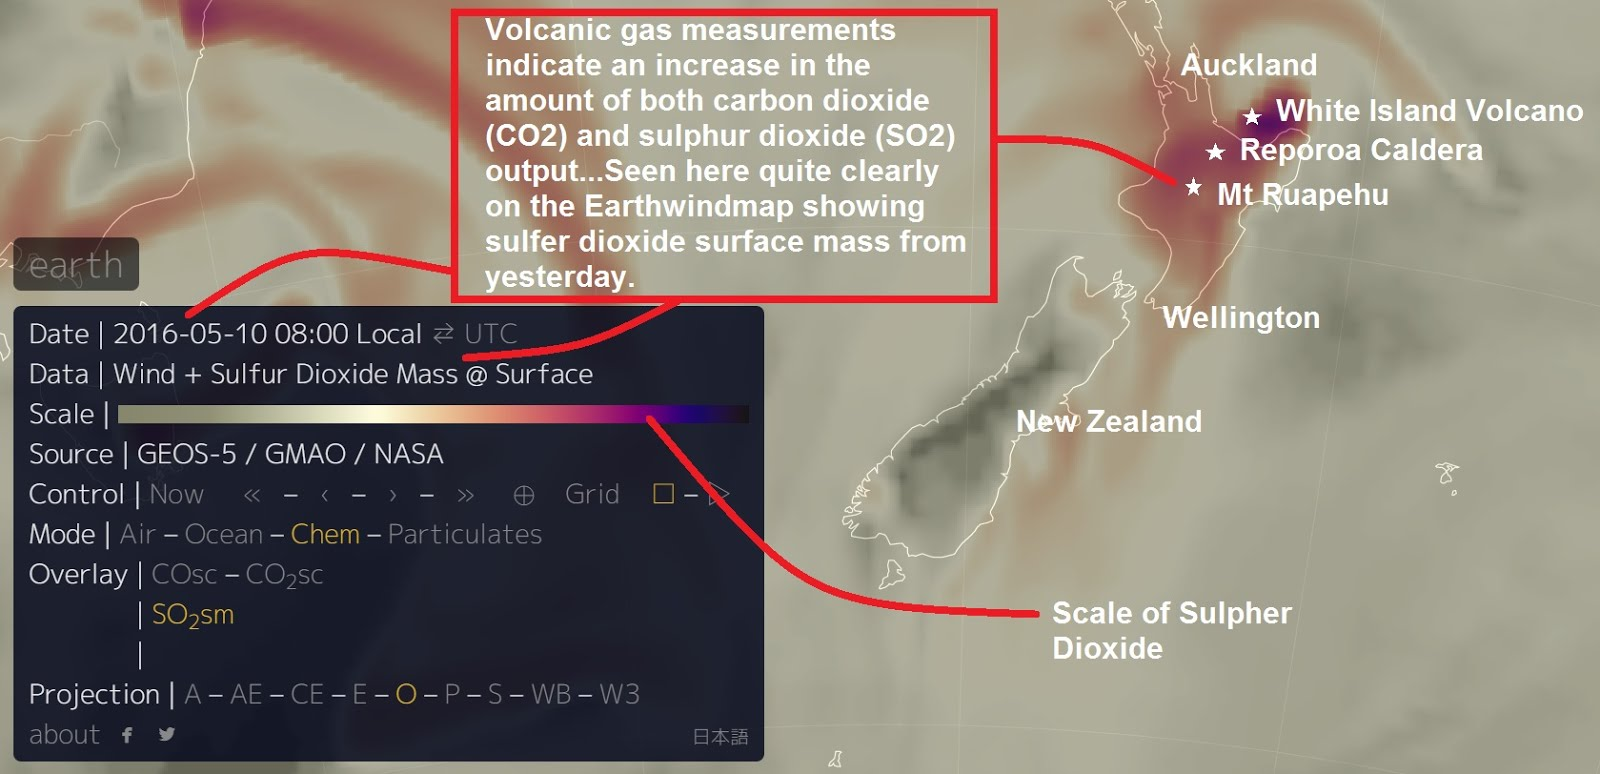 "New Zealand's North Island home of ""Super Volcano"" Reporoa Caldera, the colossus Mt Ruapehu and..."